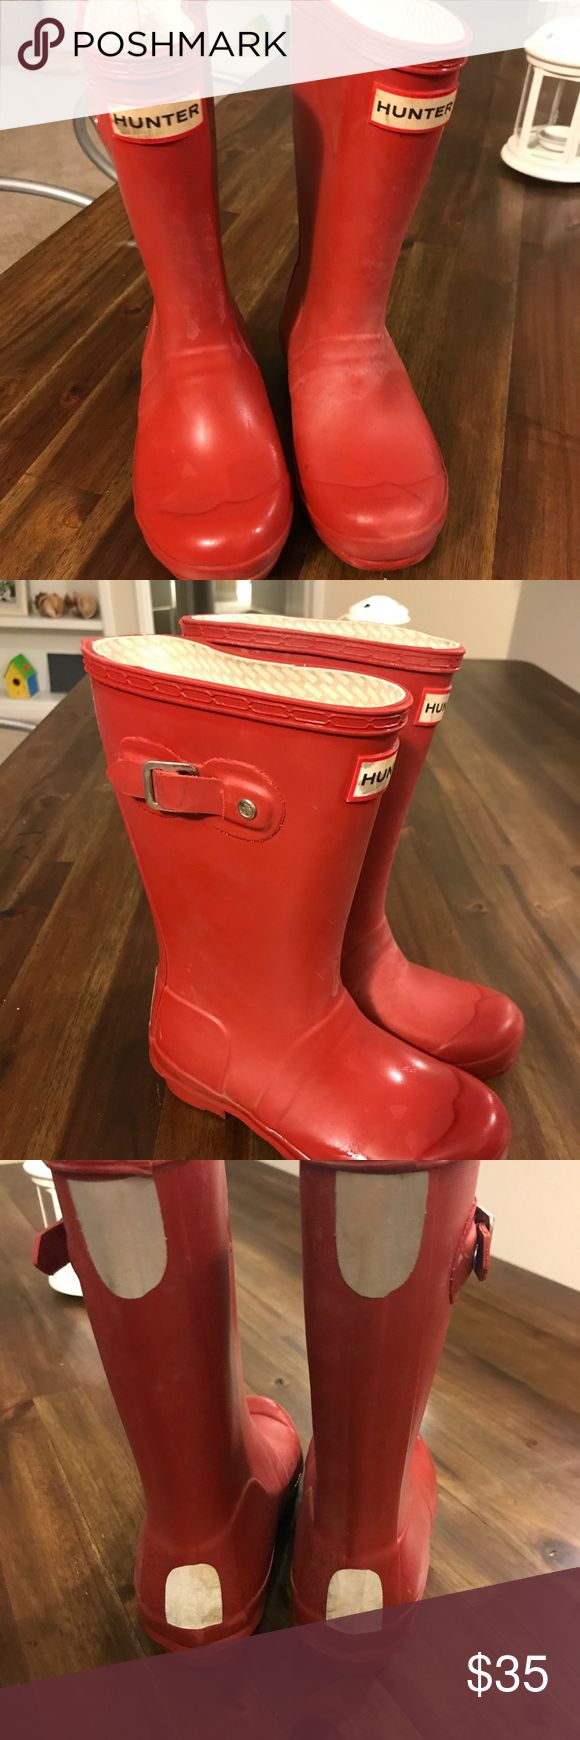 Hunter rain boots red boys size 13 Red hunter boots size 13 boys Hunter Boots Shoes Rain & Snow Boots